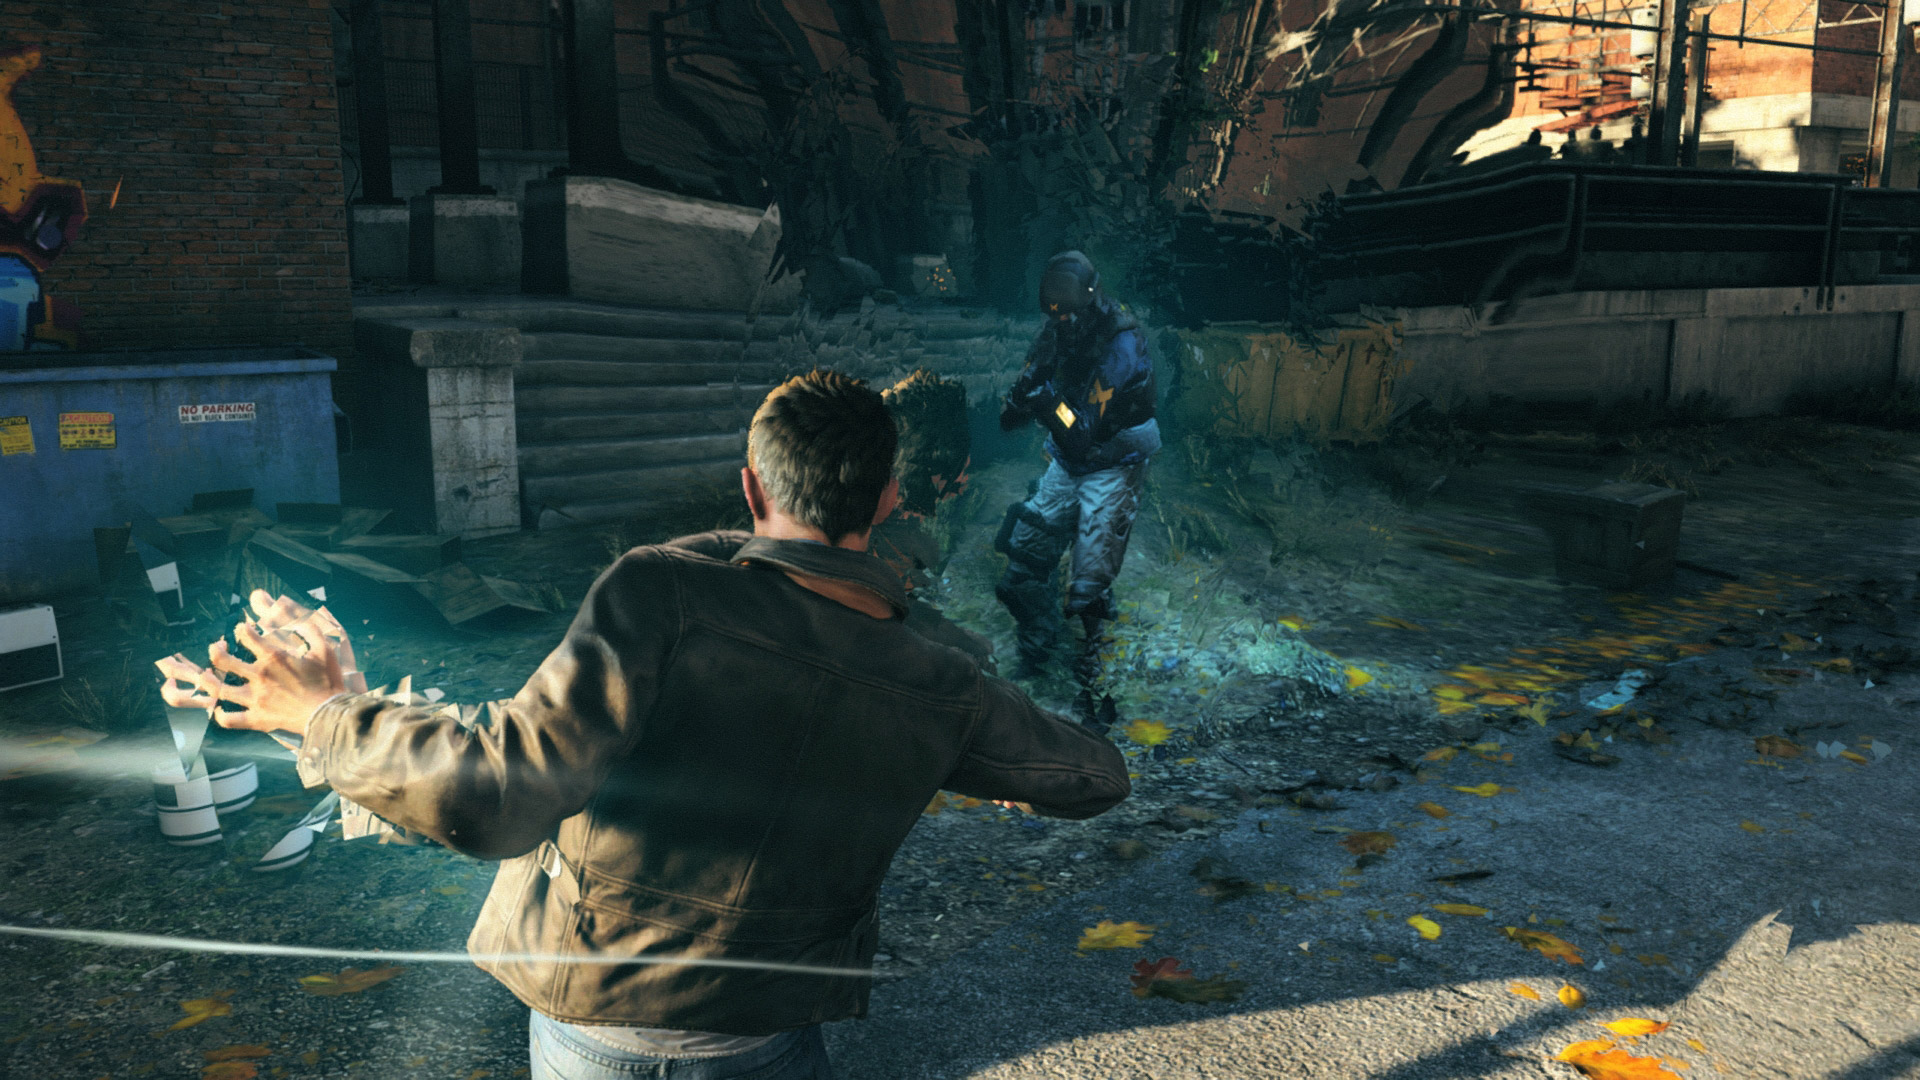 Quantum Break on the Xbox One comes with free PC copy, as well as Alan Wake